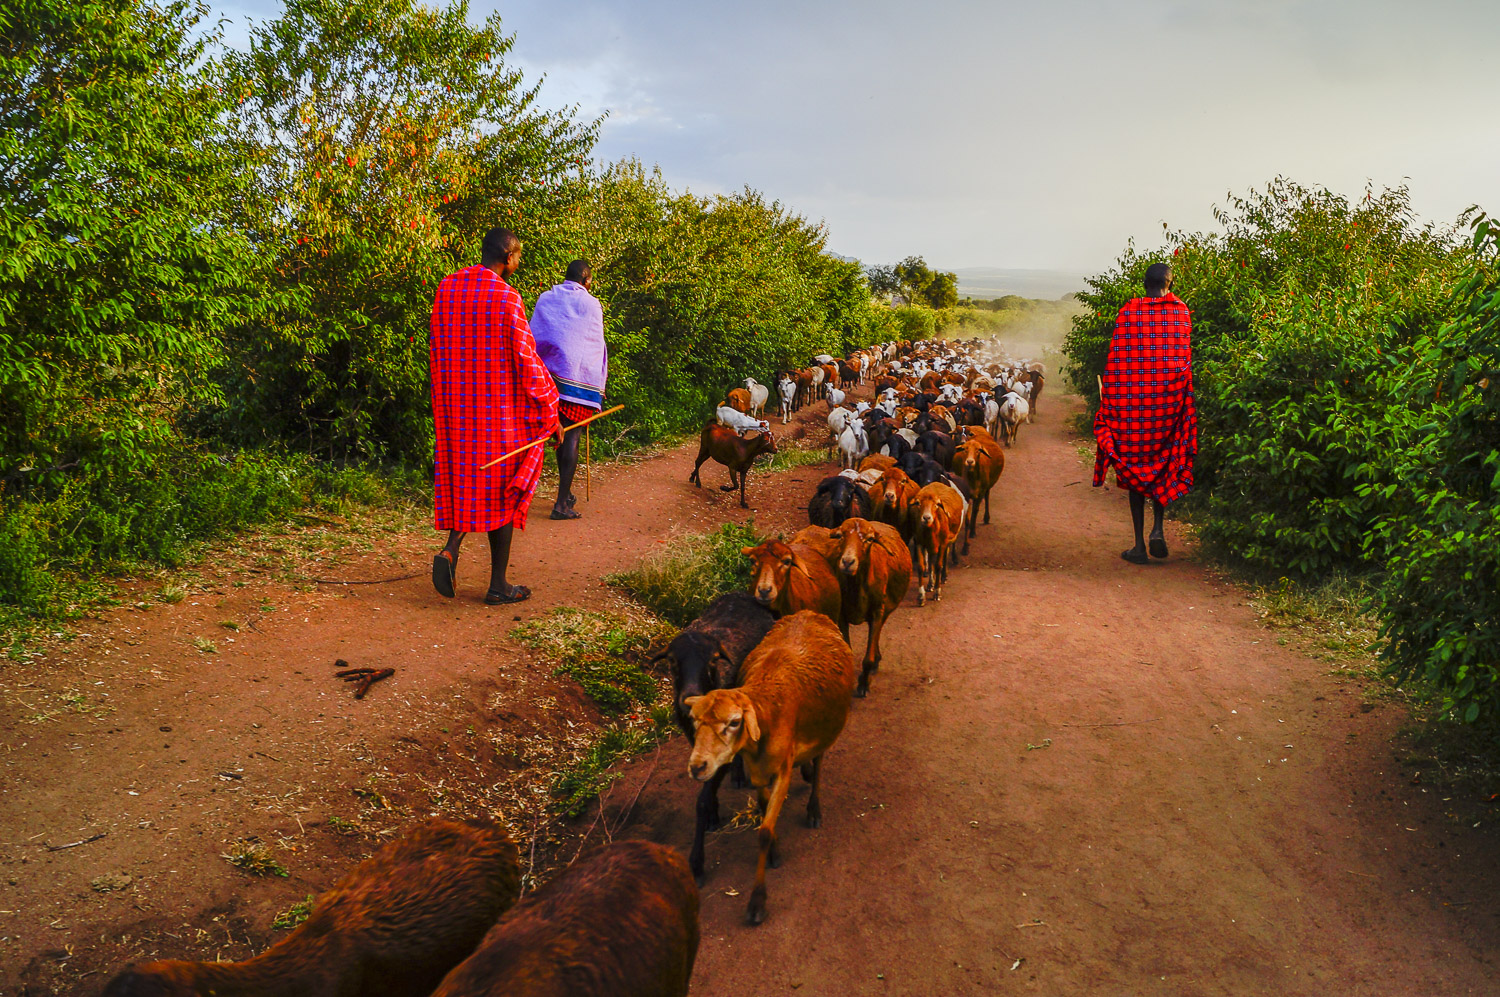 A typical morning in the life of the Maasai as they walk their cattle out to pasture. The leader (back left)explained to us that the number of cattle a man has is a measure of wealth. He was sure to boast that he is a wealthy man.